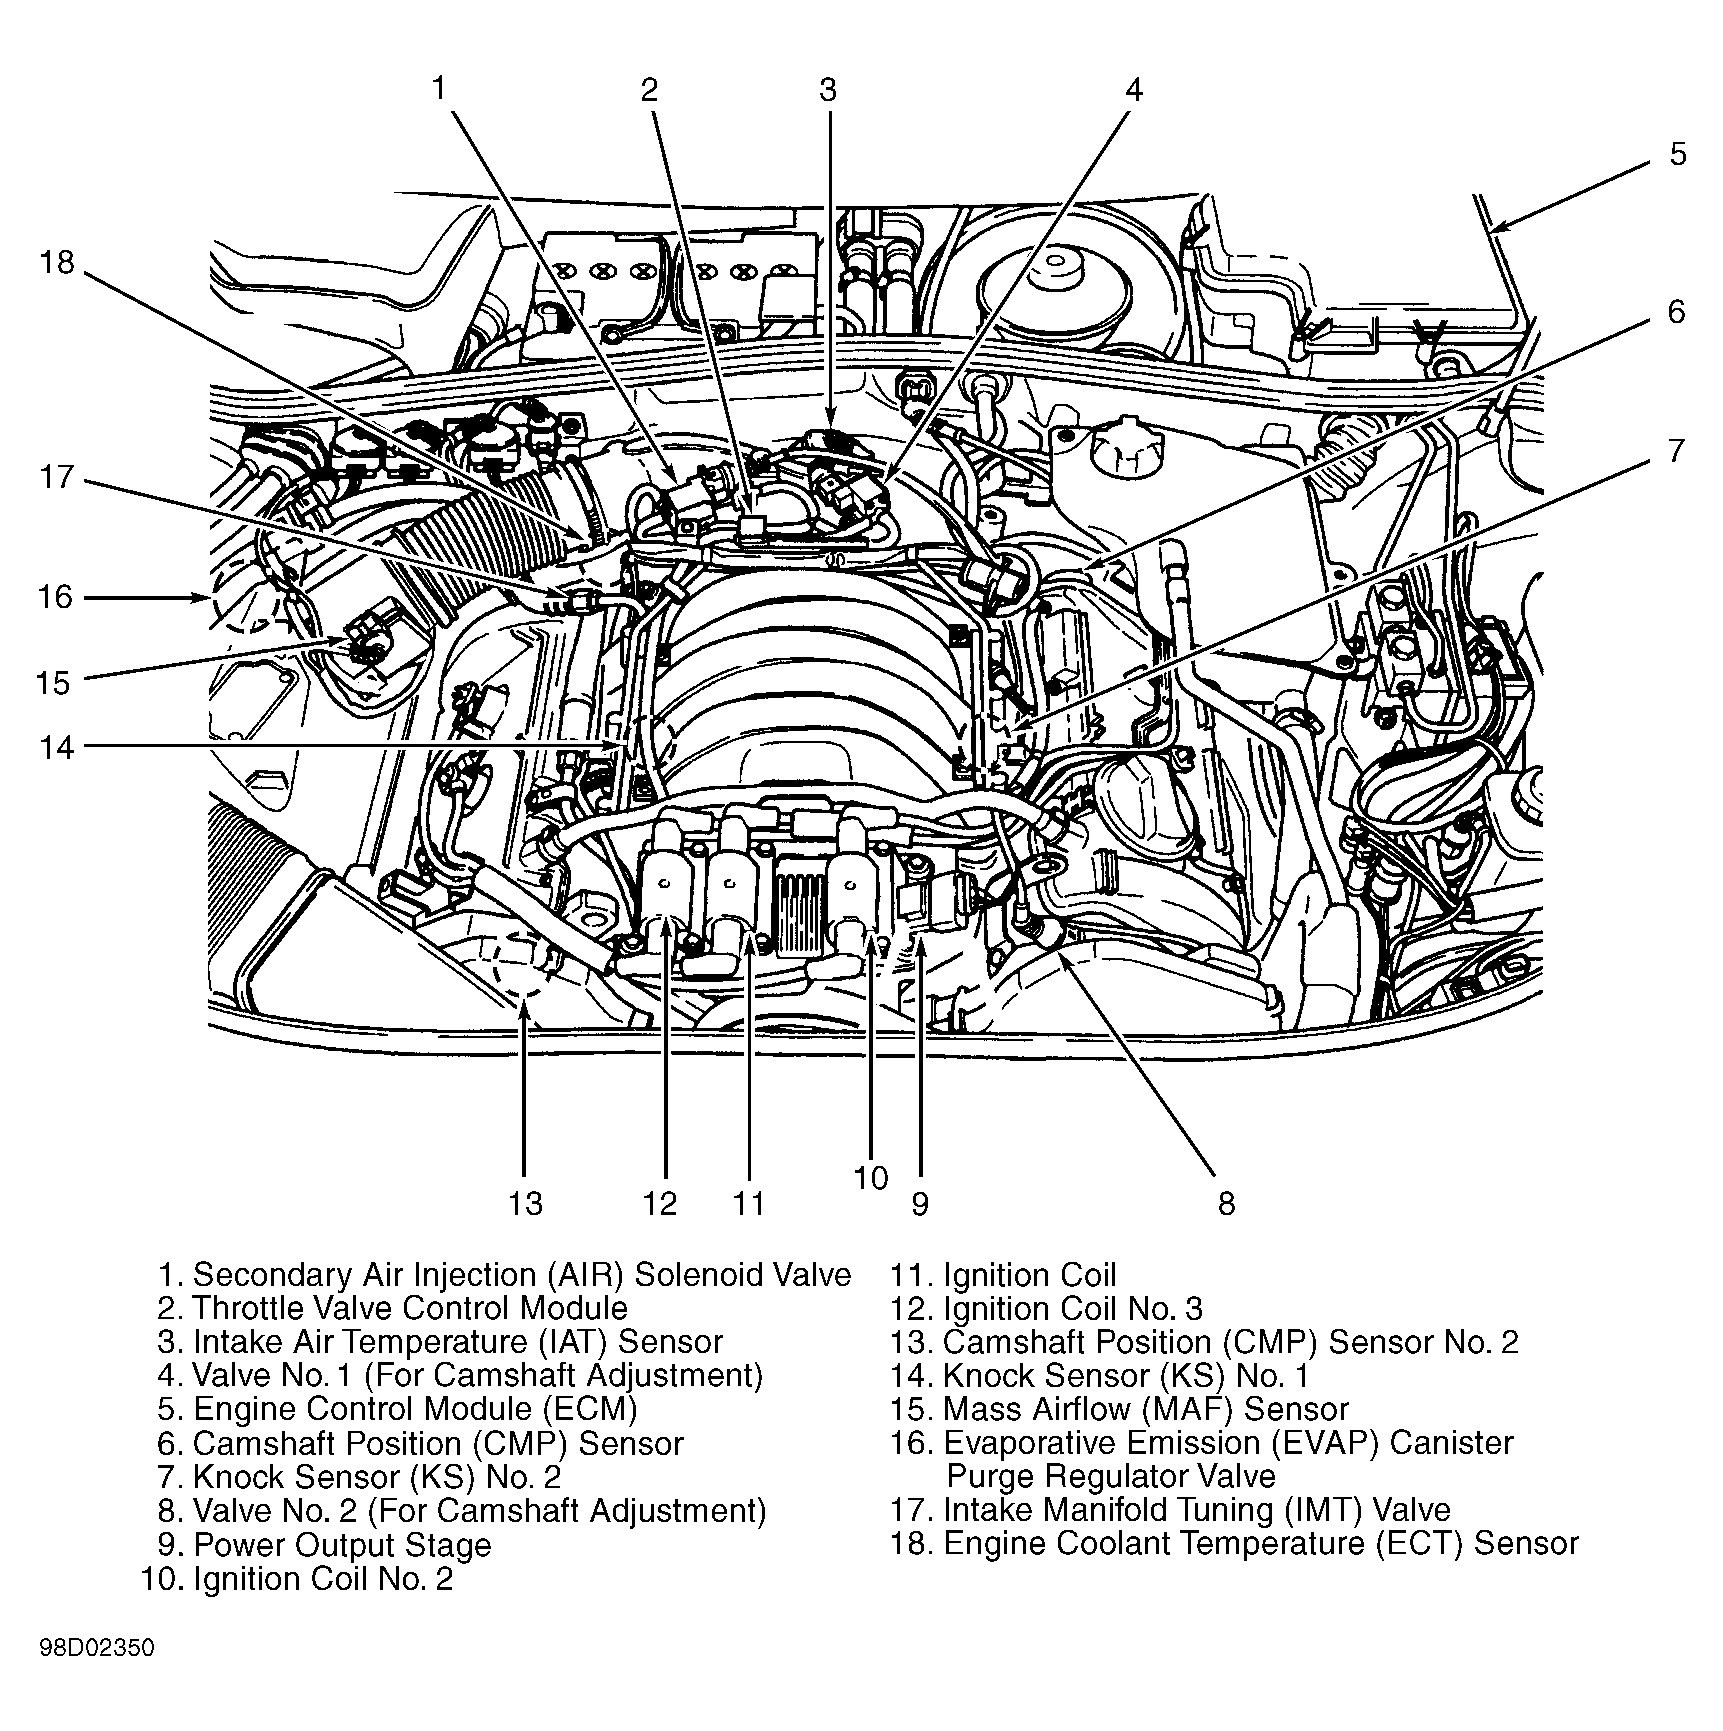 [WRG-1635] 2000 Dodge Intrepid Engine Diagram